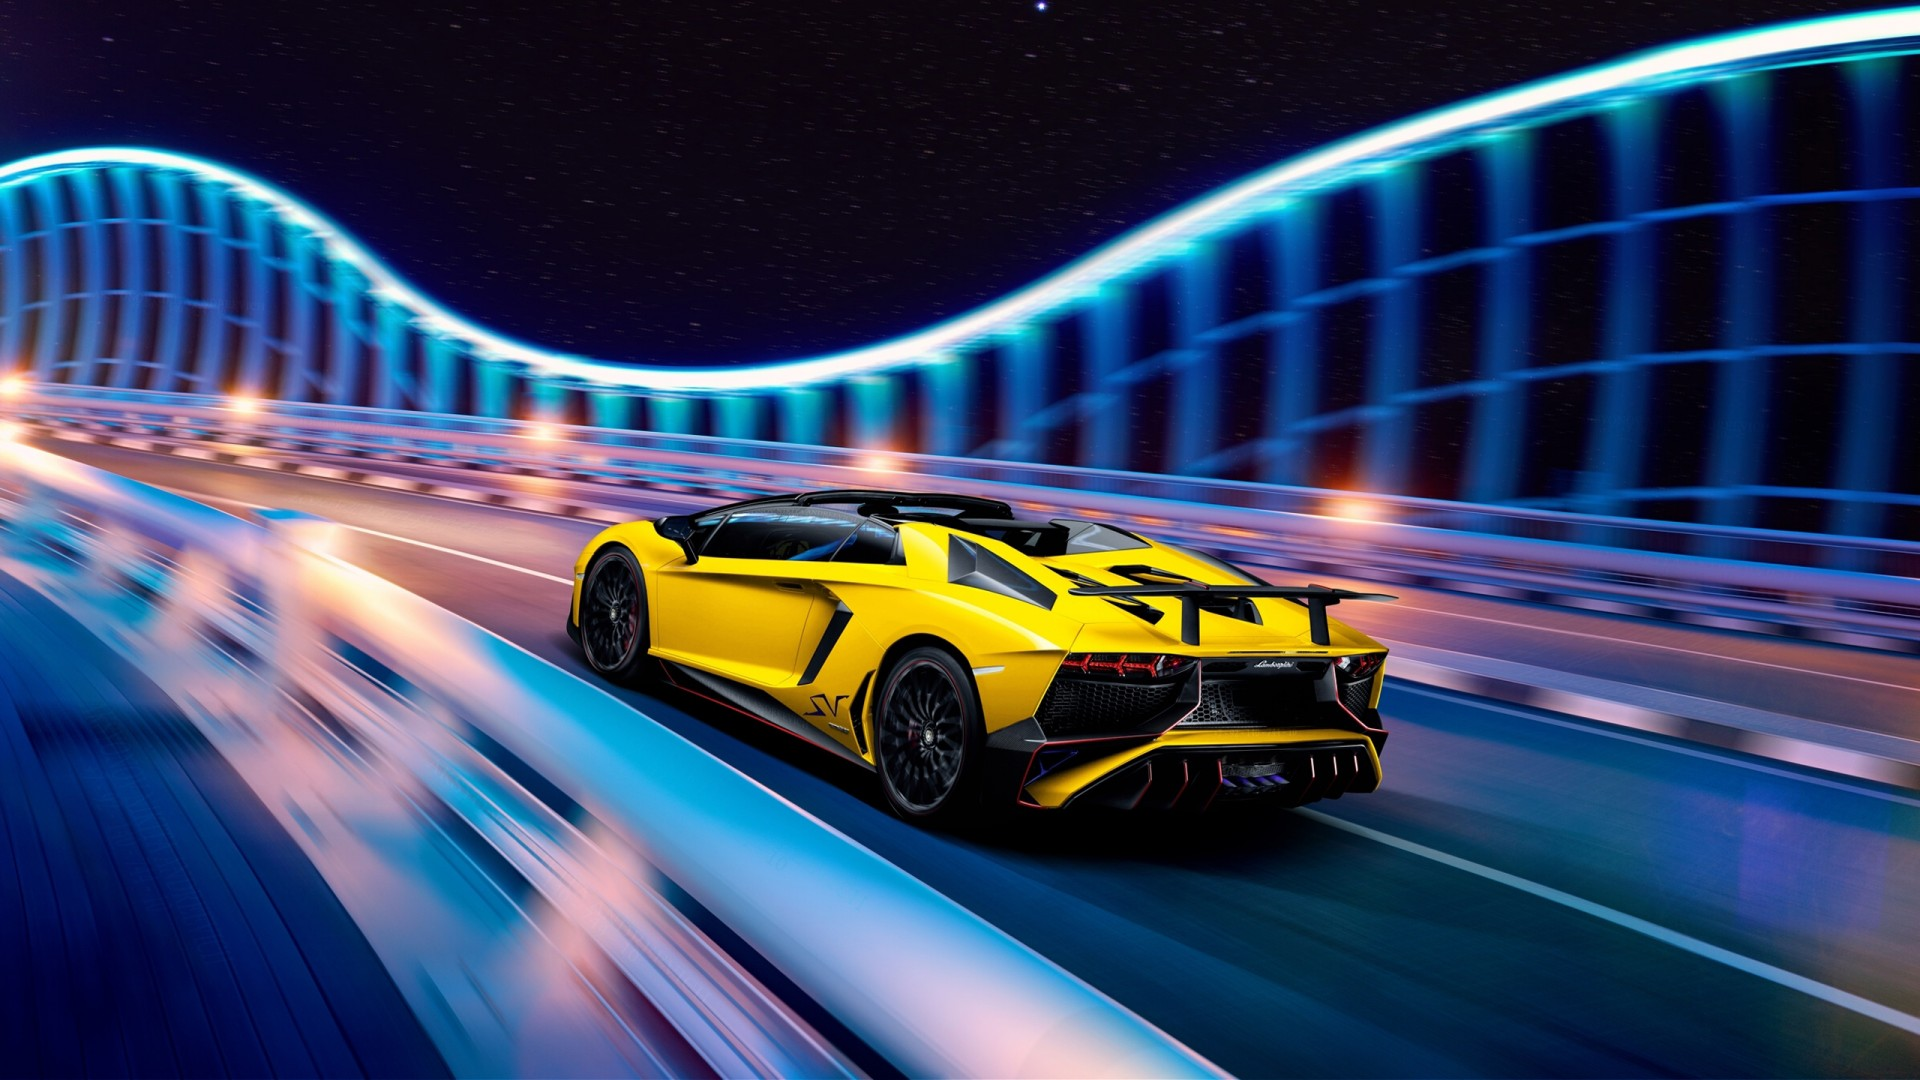 Group Of Lamborghini Neon Wallpapers